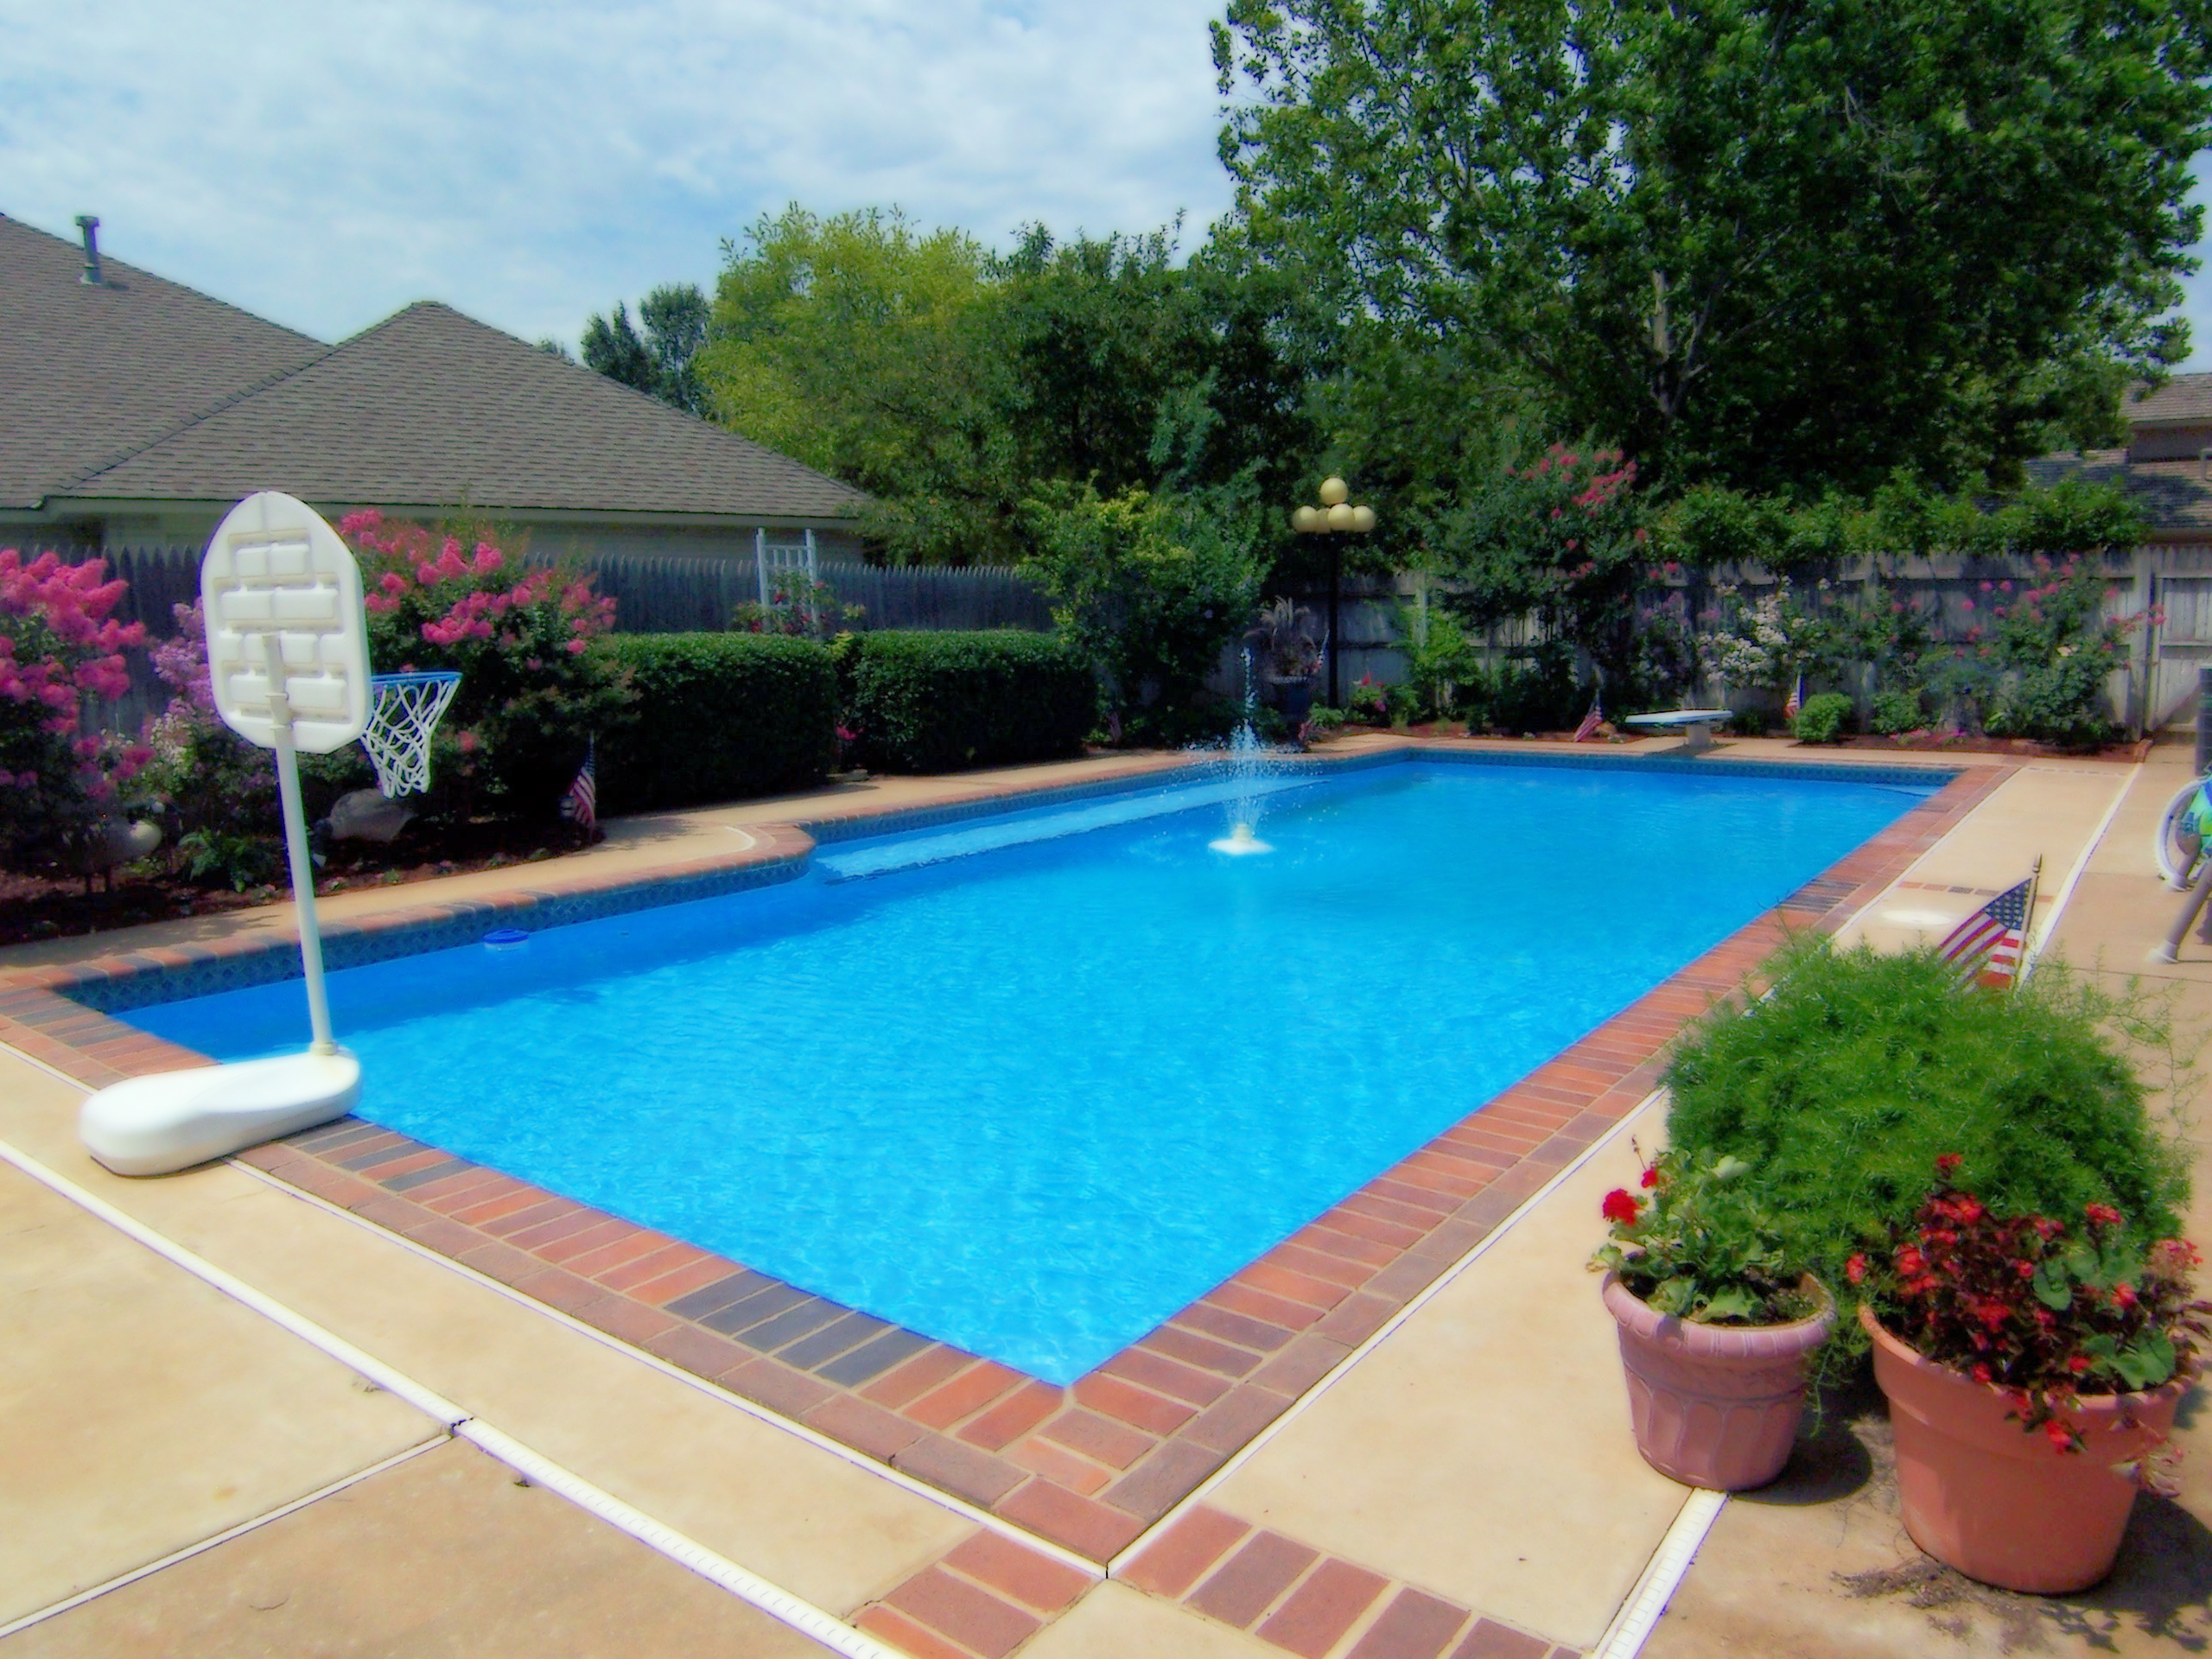 Insuring A Home With A Pool Or Trampoline